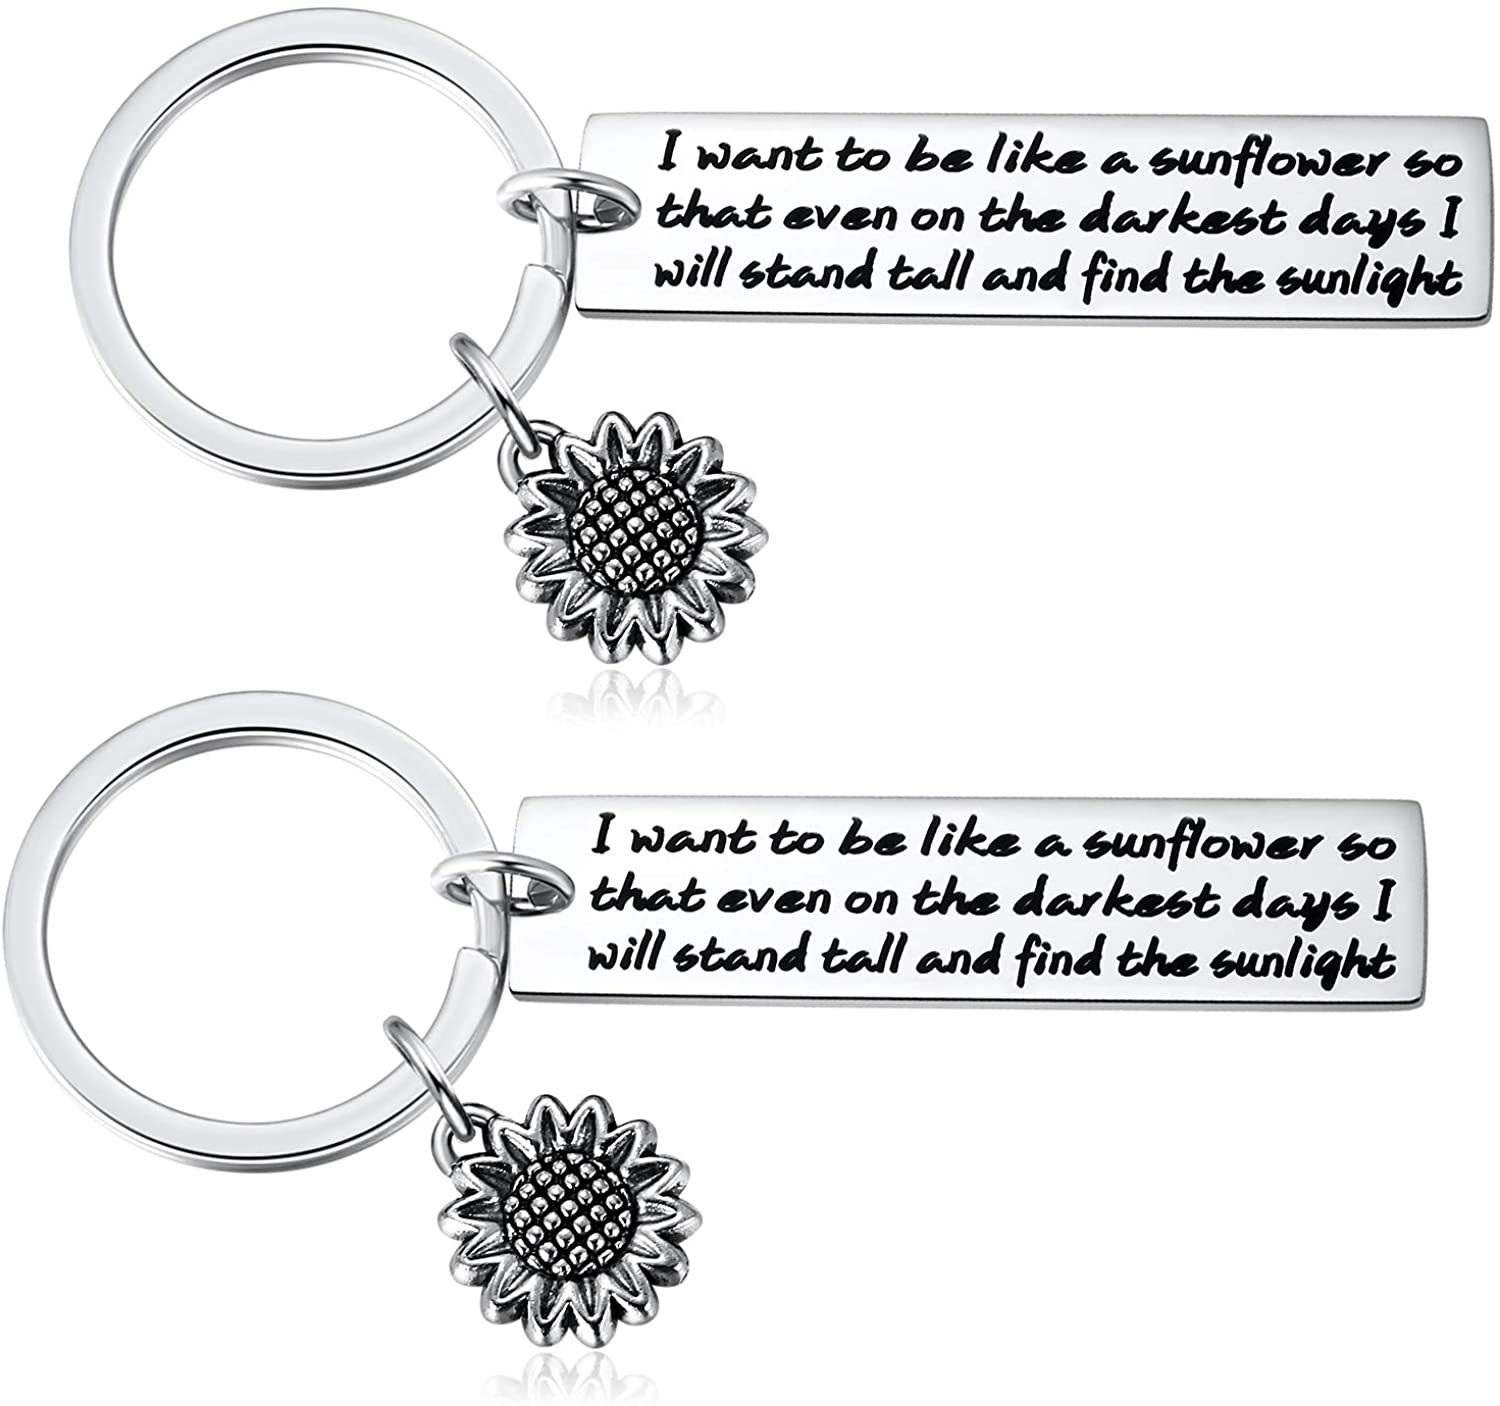 Sunflower Keychain Women Inspirational Gifts - 2PCS I Want to be Like a Sunflower So That Even on The Darkest Days I Will Stand Spiritual Floral Key Chains Girls Women Friends Gifts Jewelry